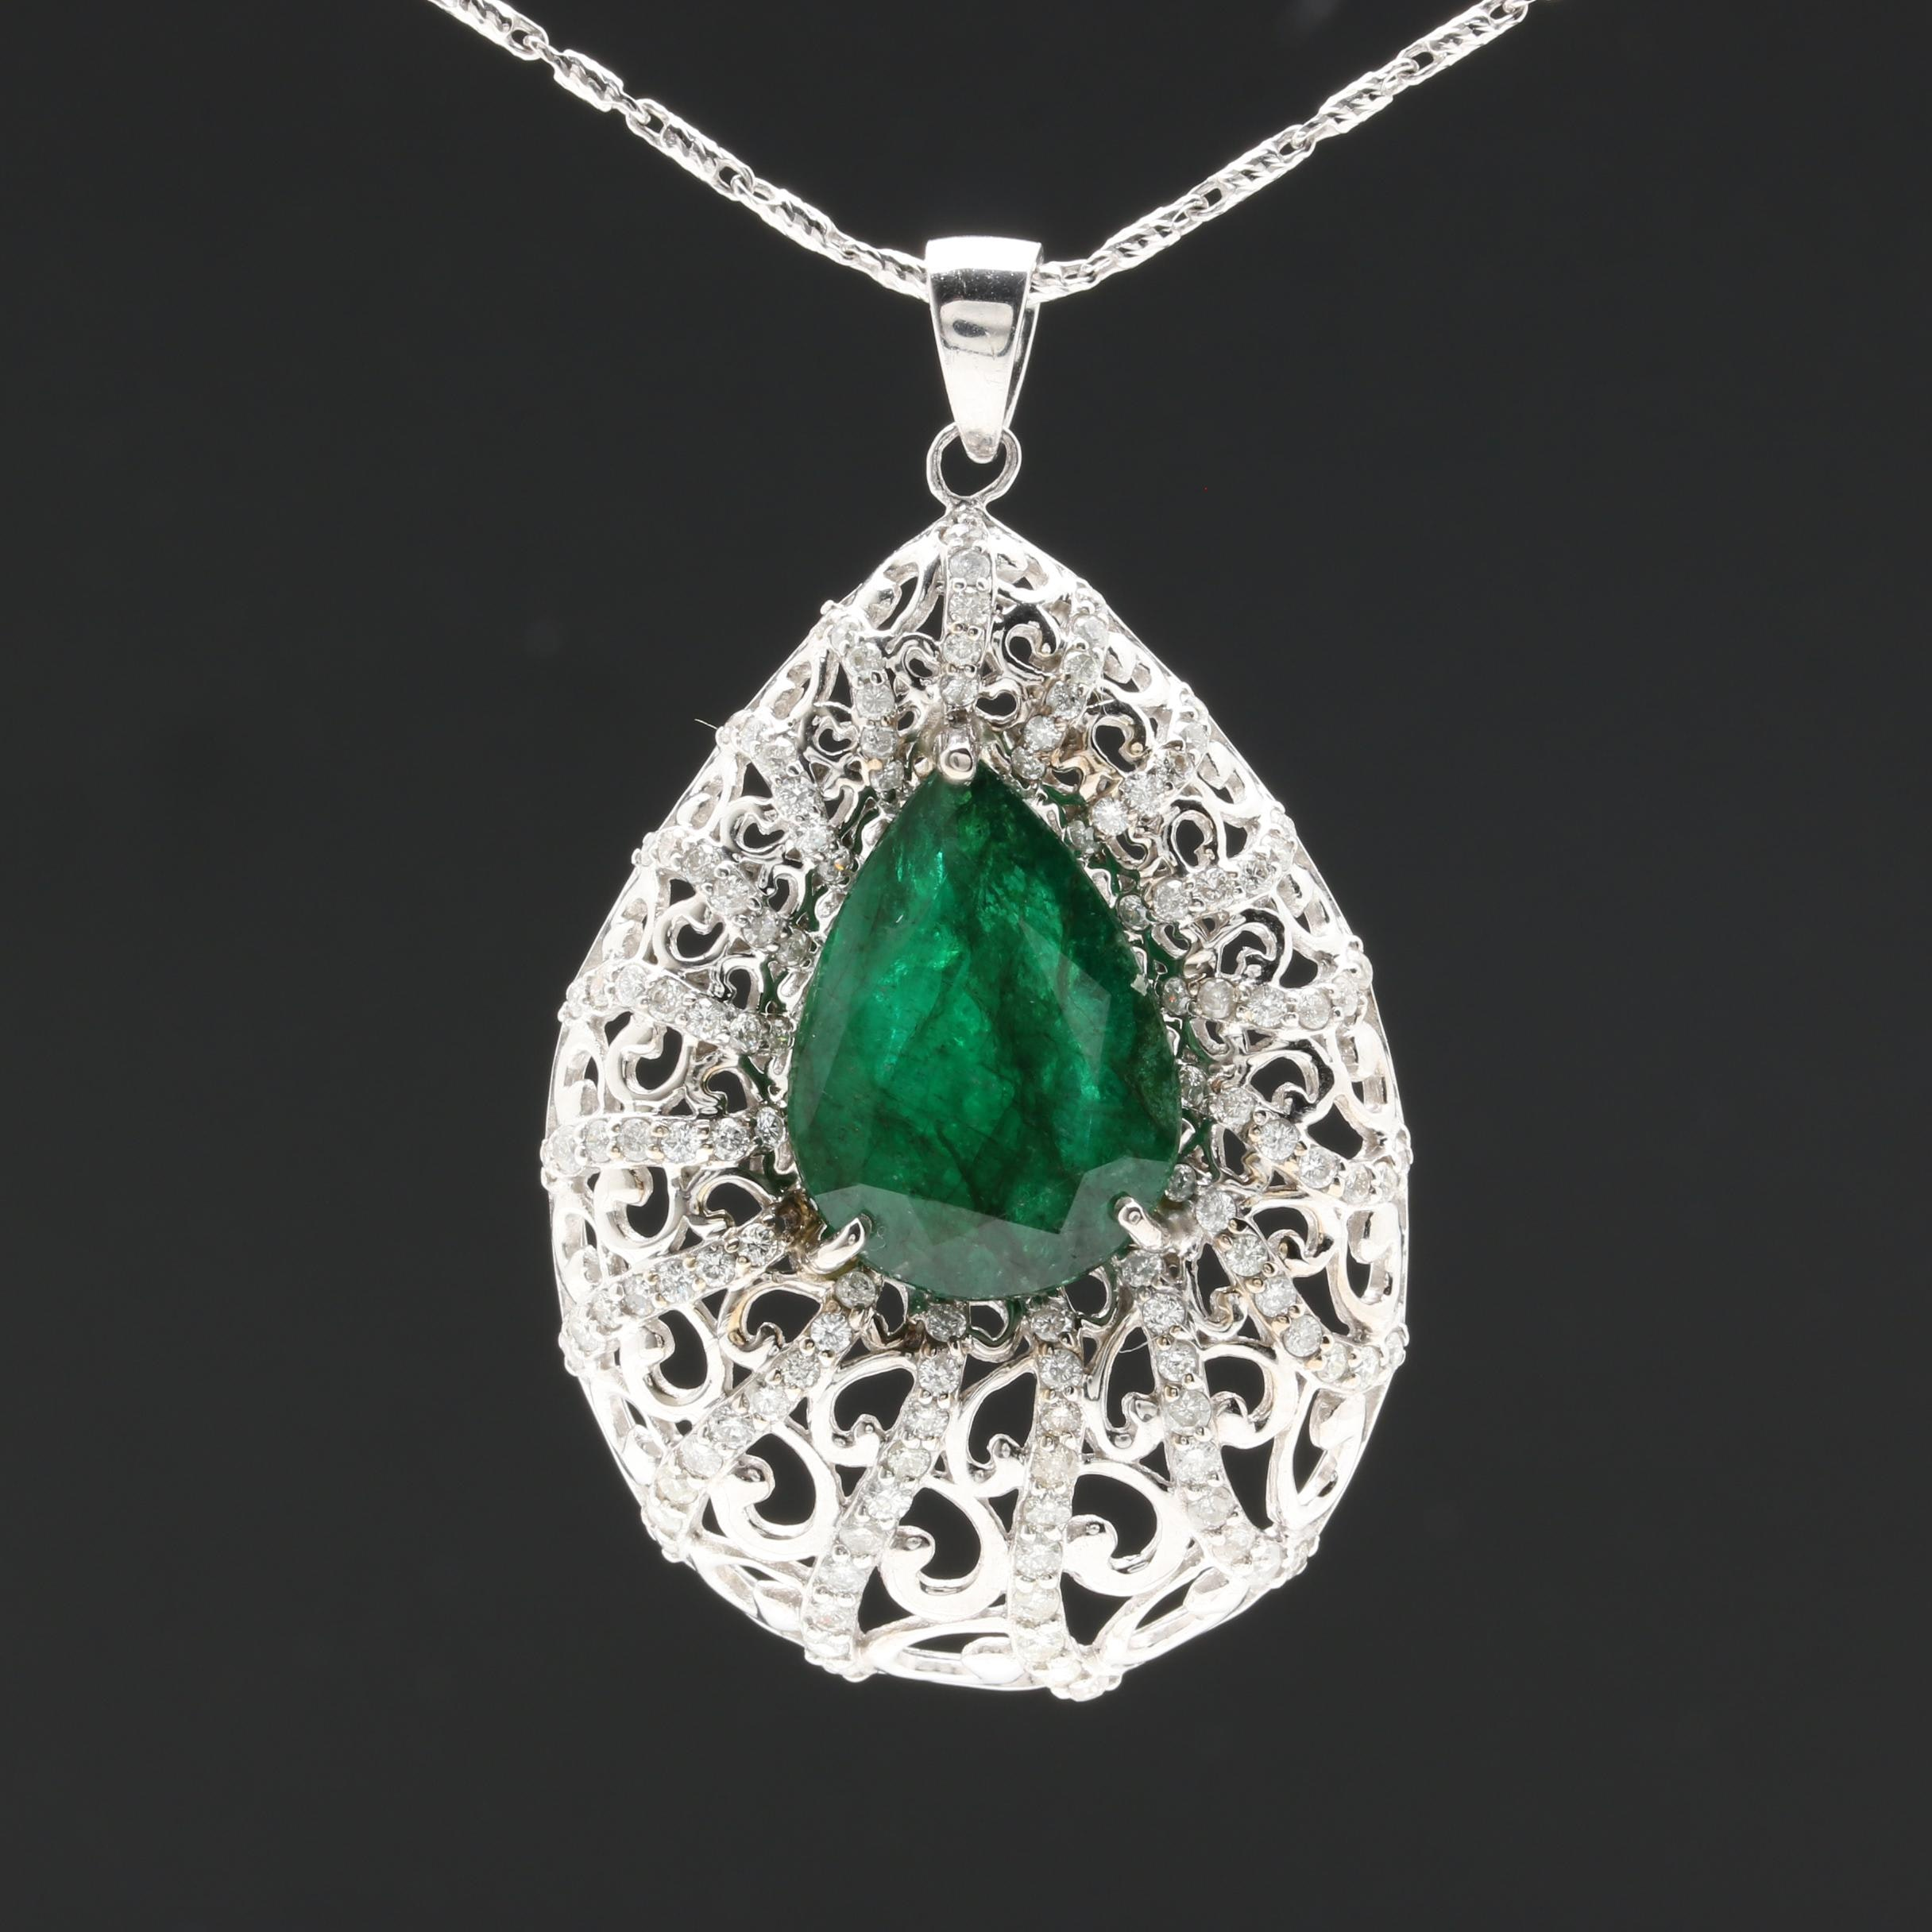 14K White Gold 8.02 CT Emerald and 1.71 CTW Diamond Pendant Necklace